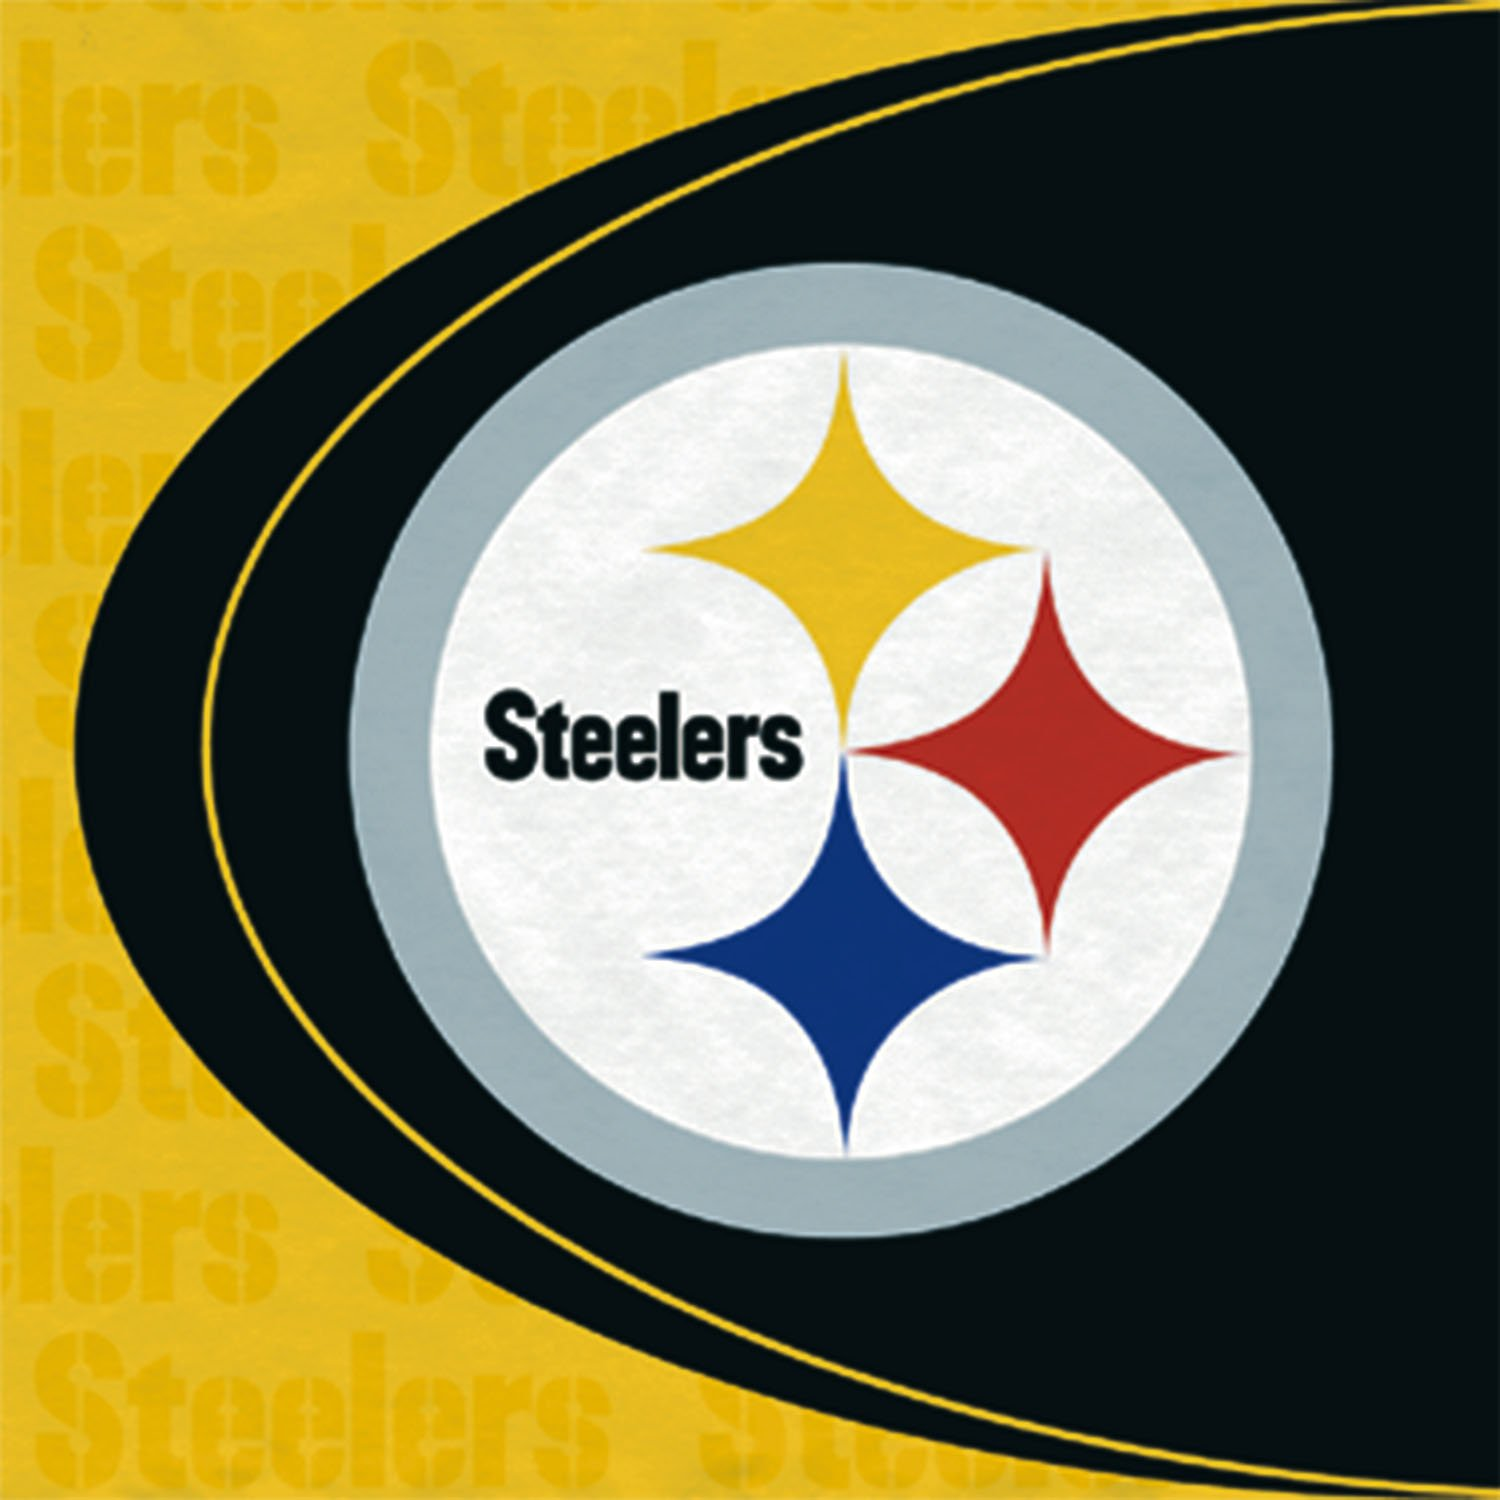 Wallpaper steelers 1500x1500